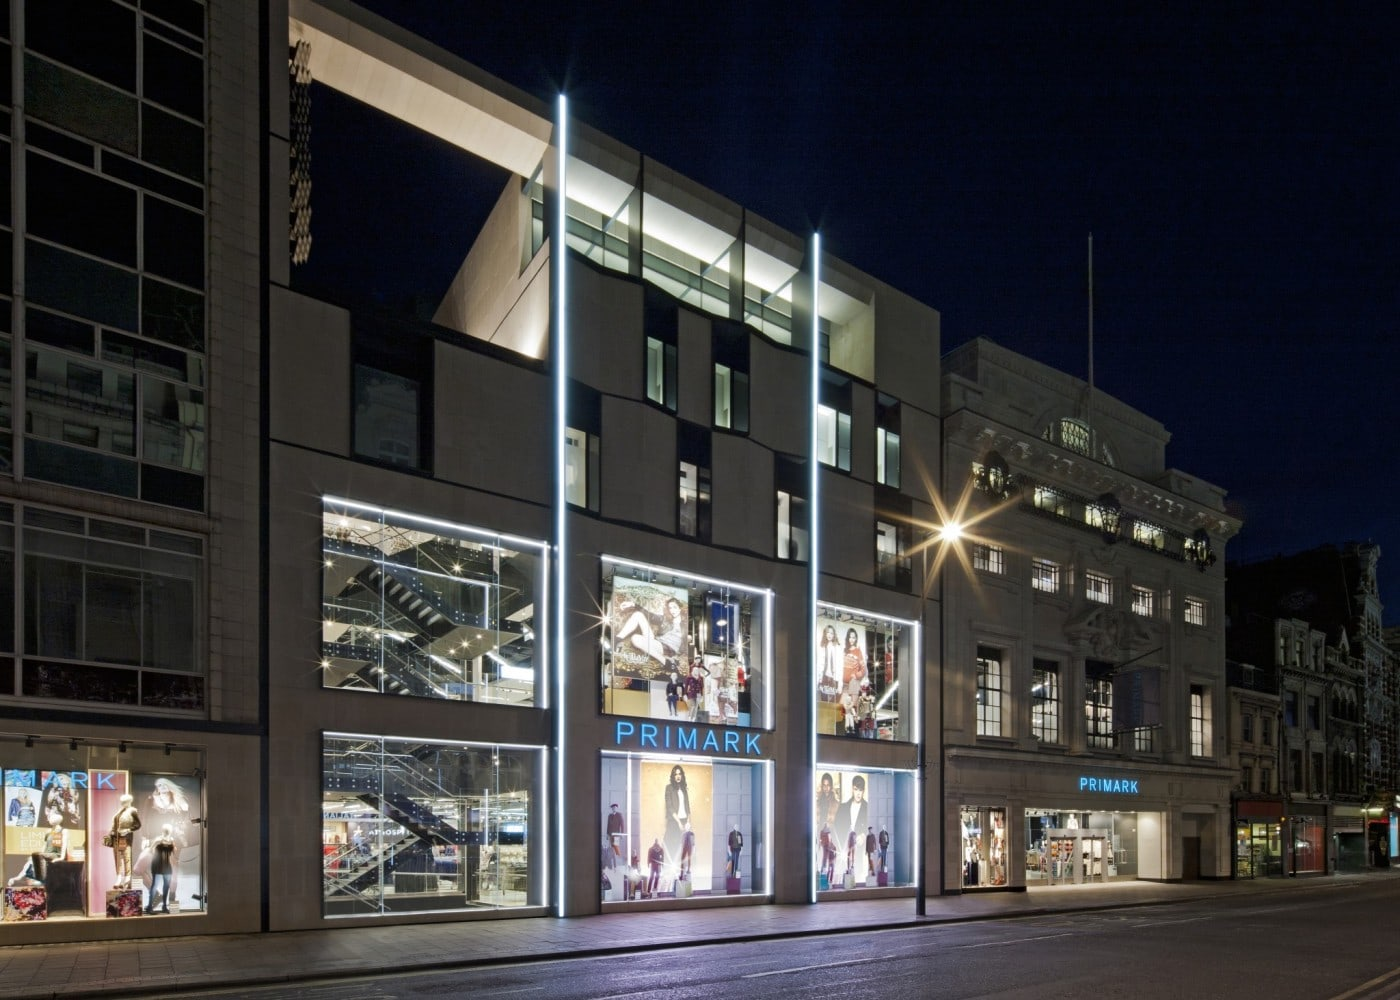 retail lighting design: Primark shop exterior